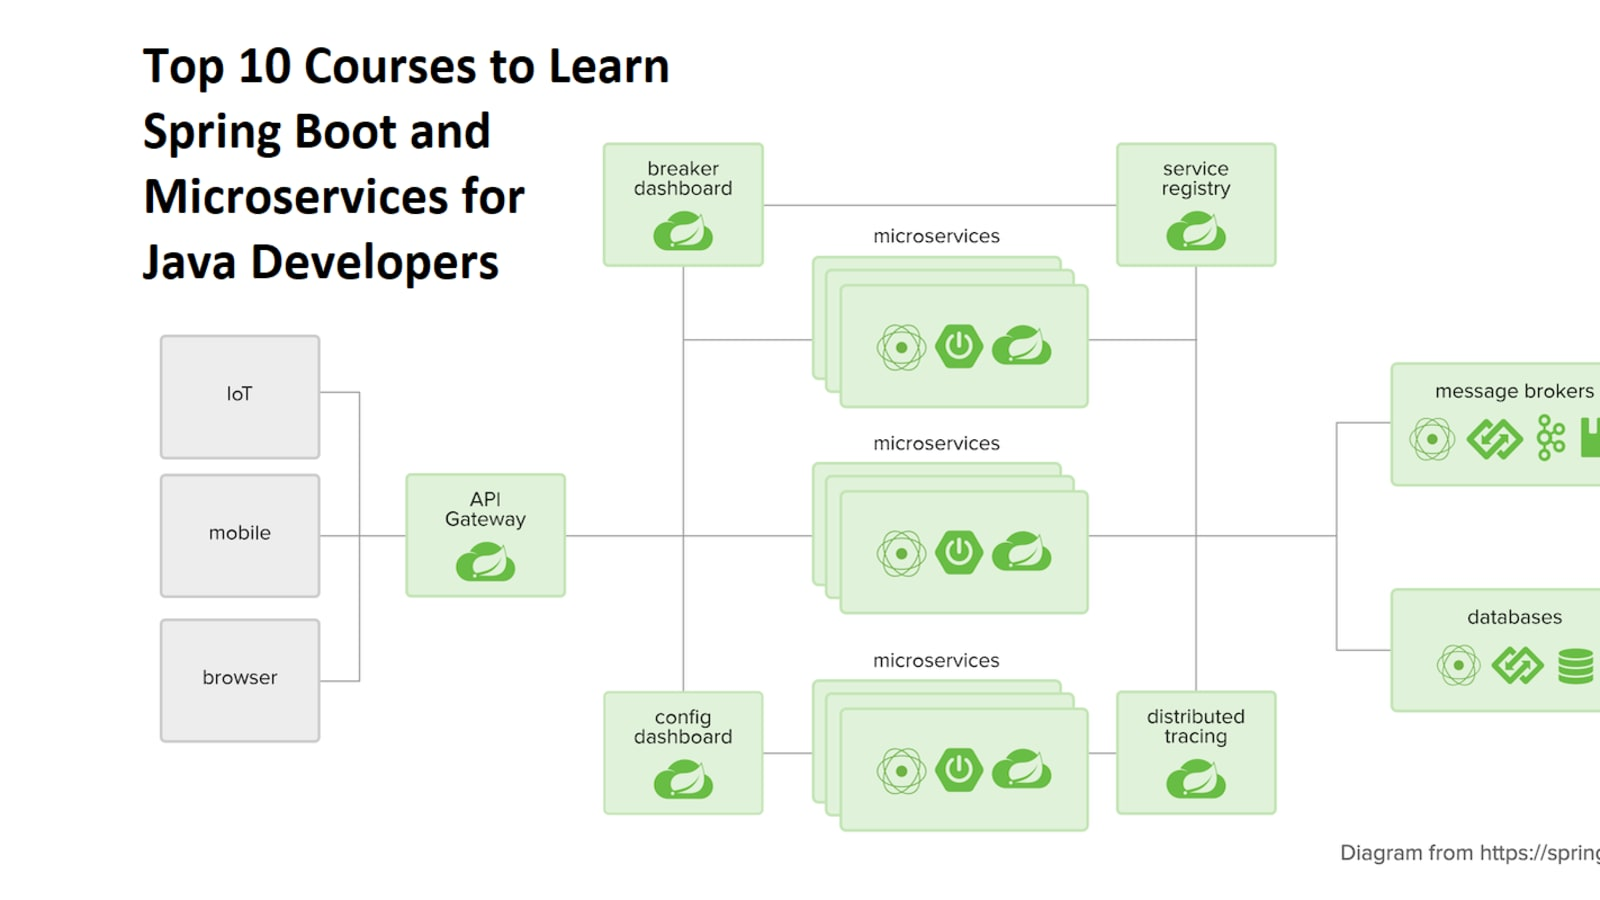 Top 10 Courses to Learn Spring Boot and